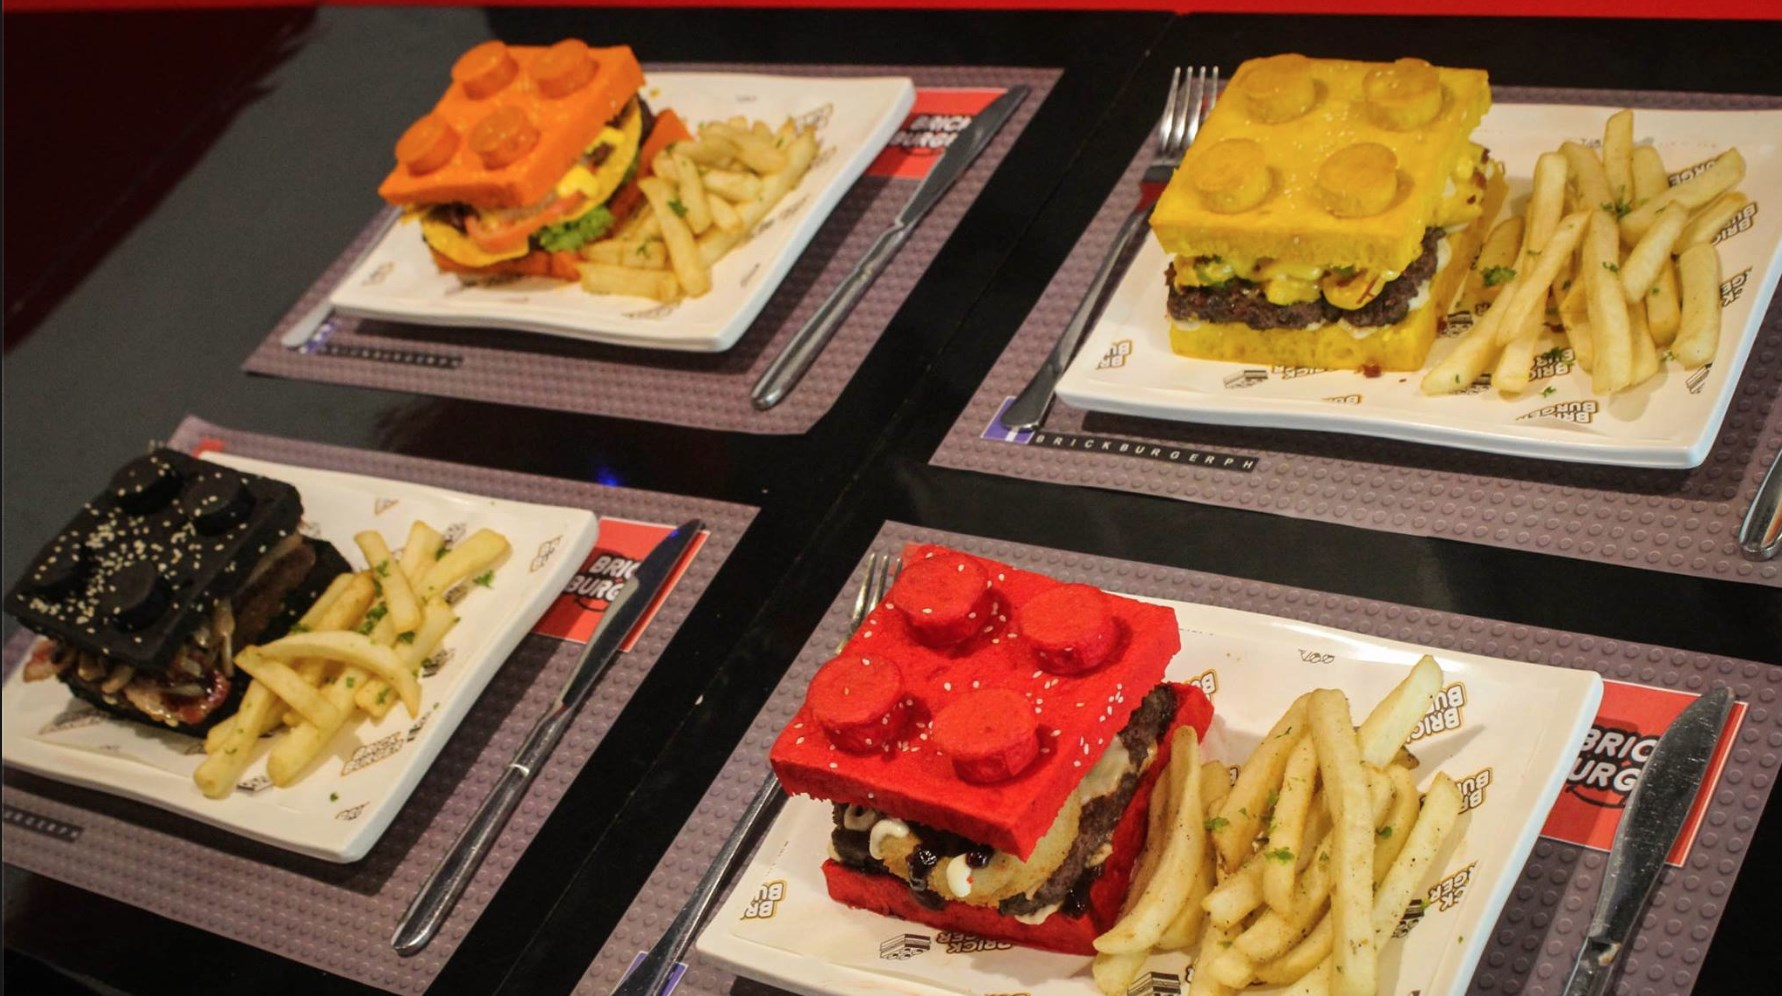 HAMBURGER DAY LEGO BURGER